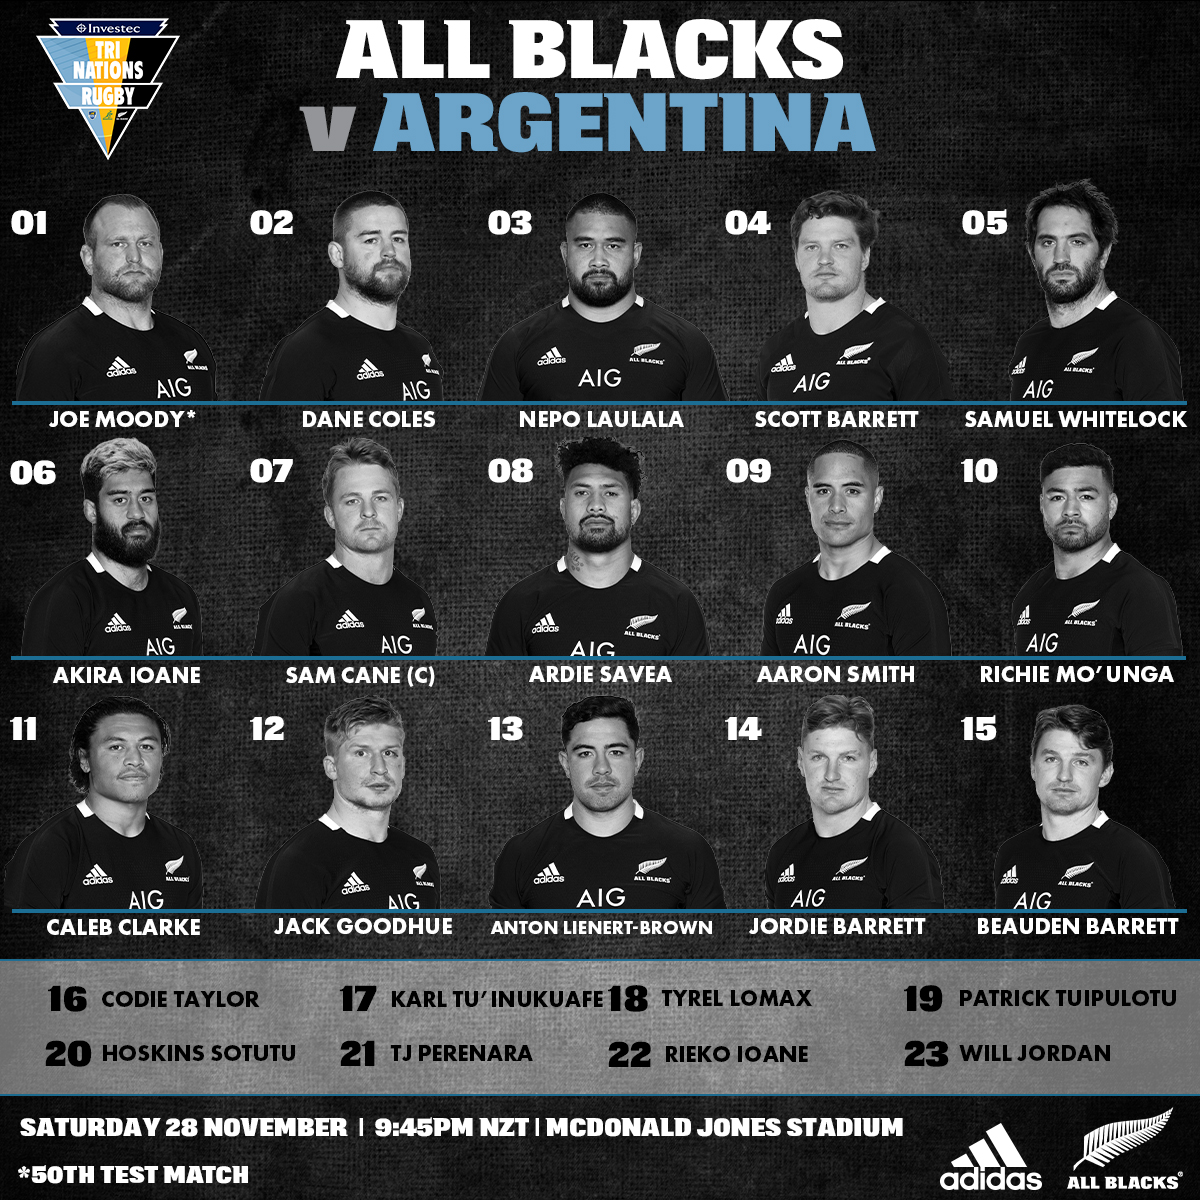 RT @AllBlacks: Your final team of 2020 😤  READ MORE ➡️ https://t.co/FKhCRnAGpD  #TriNations https://t.co/TSRctLh2QY